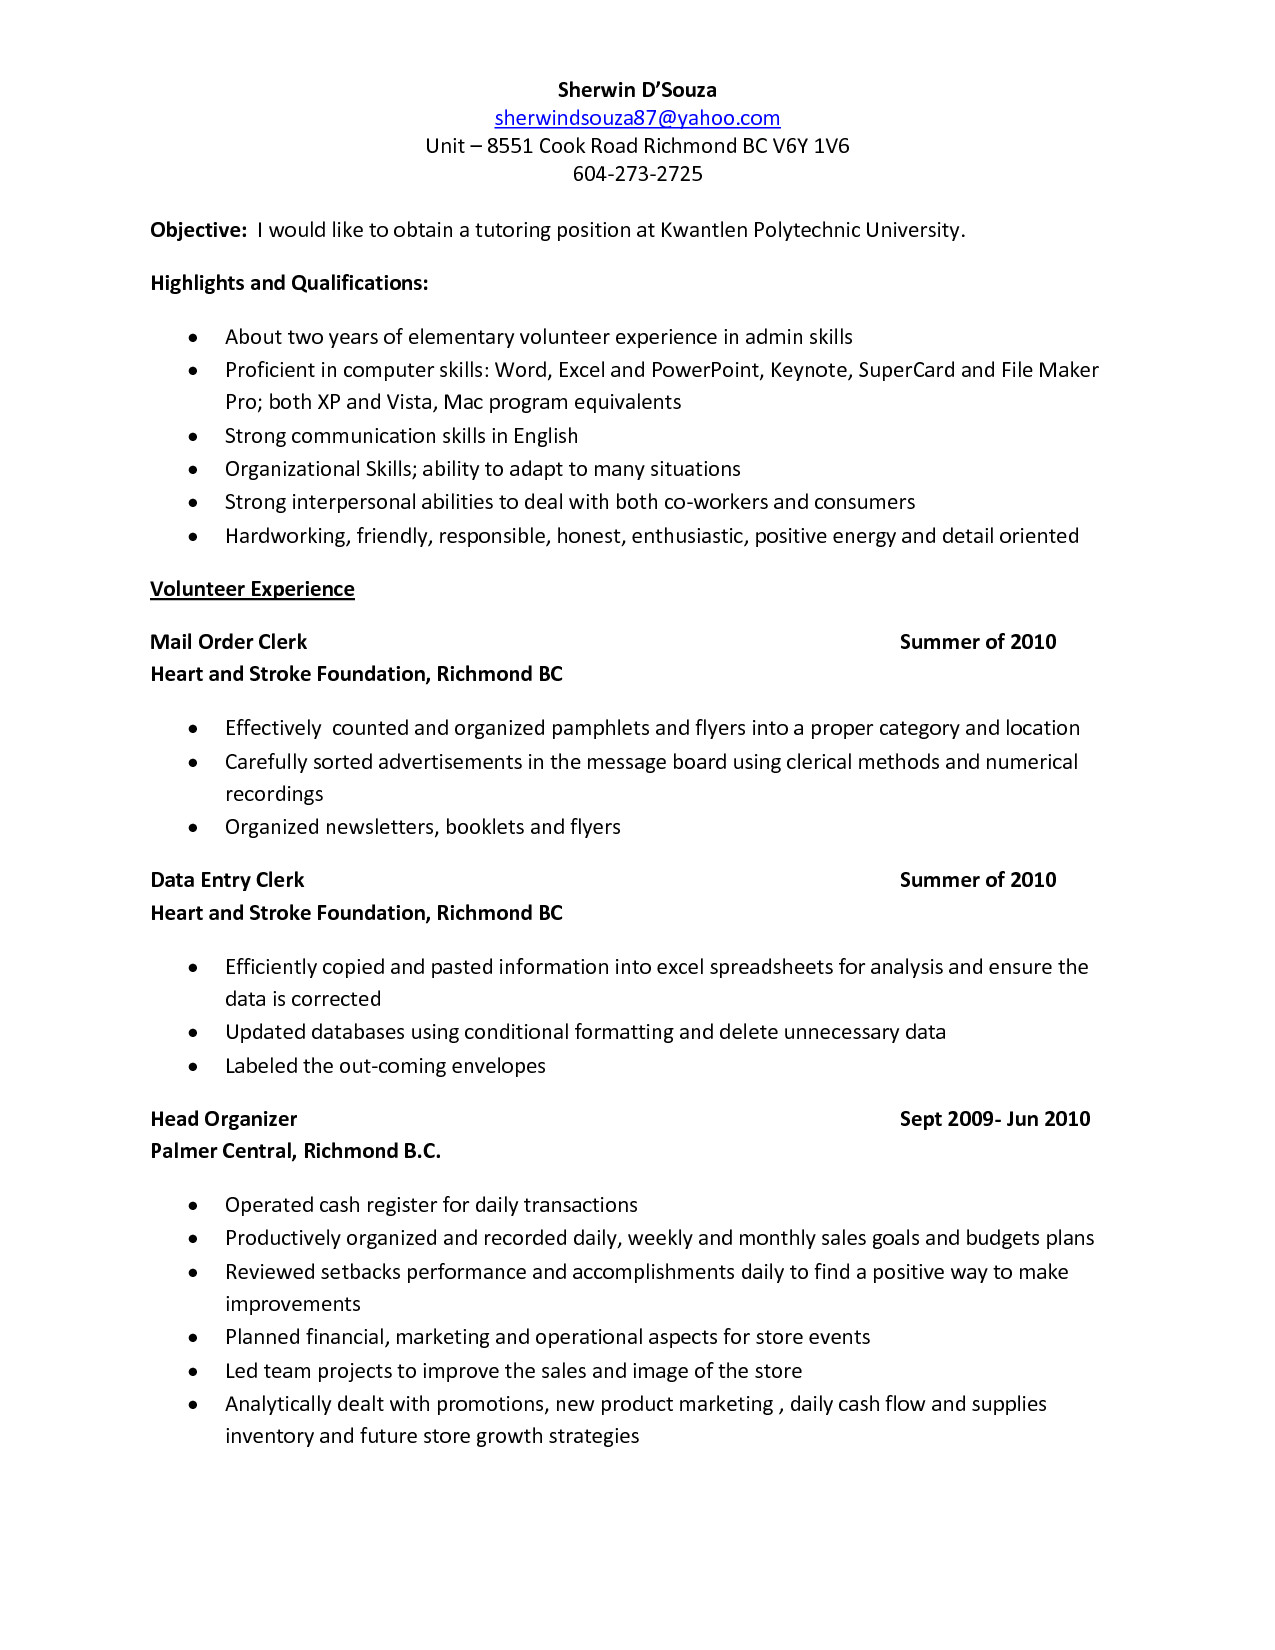 tutor resume sample 454